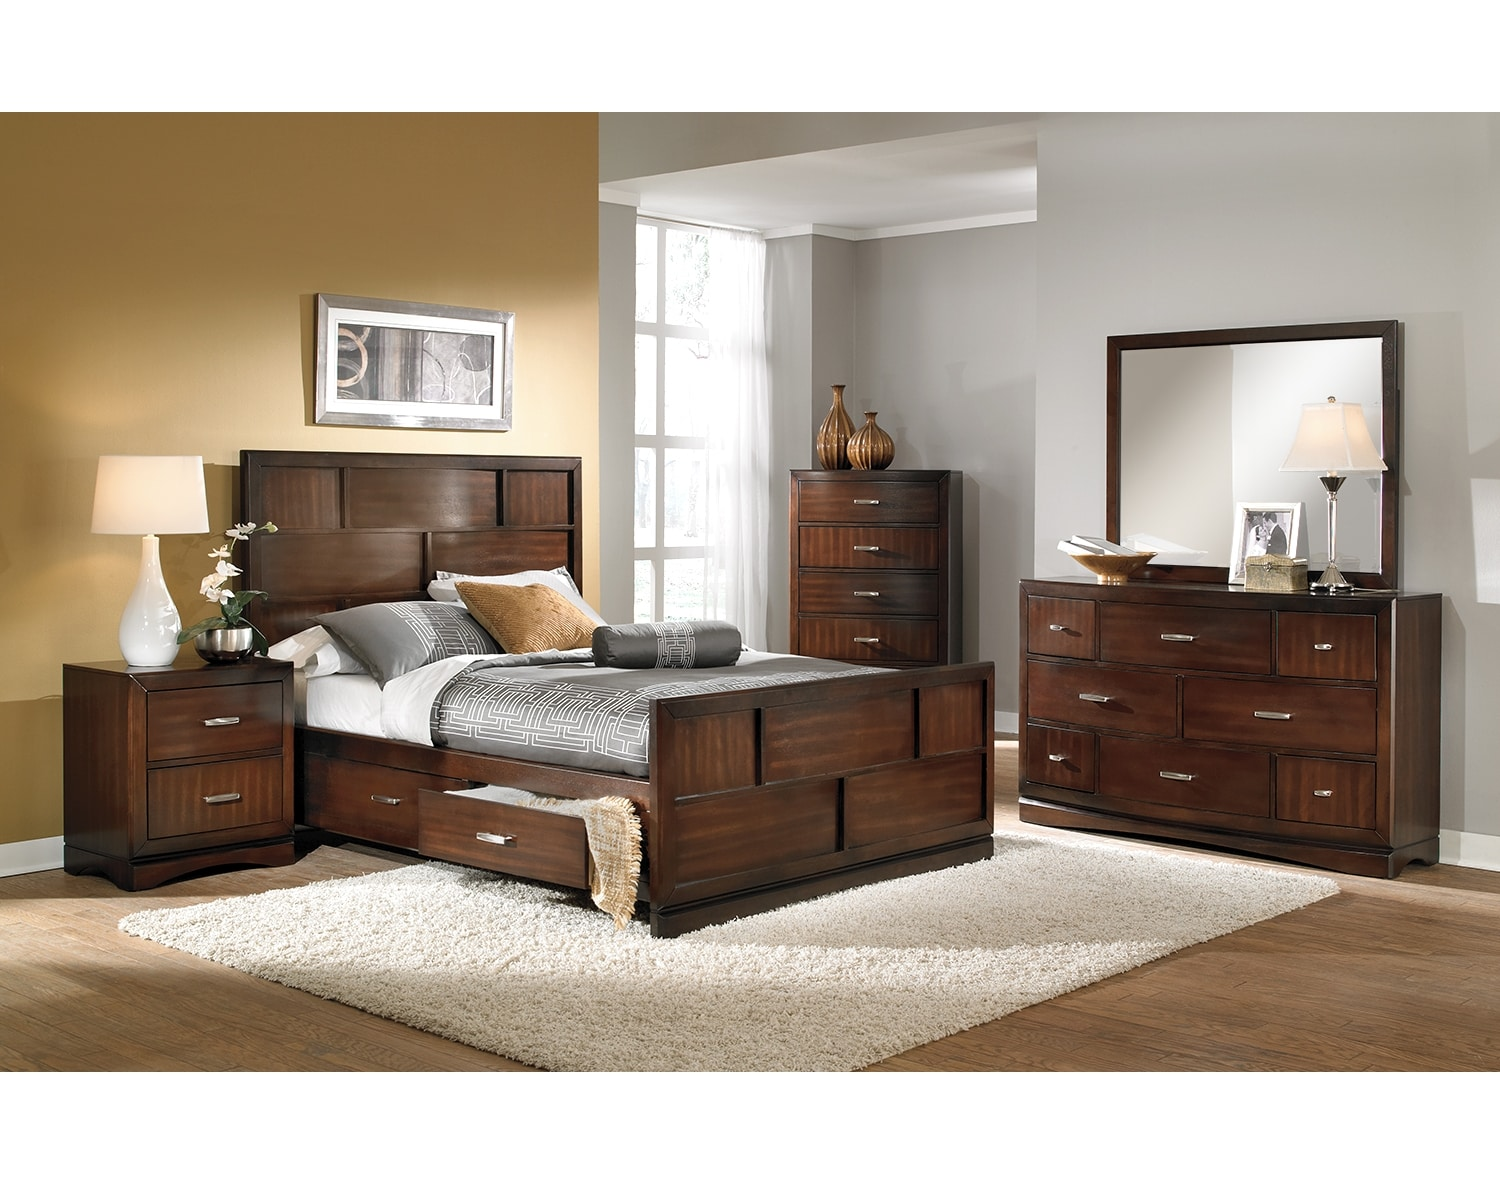 The Toronto Bedroom Collection  Value City Furniture and Mattresses